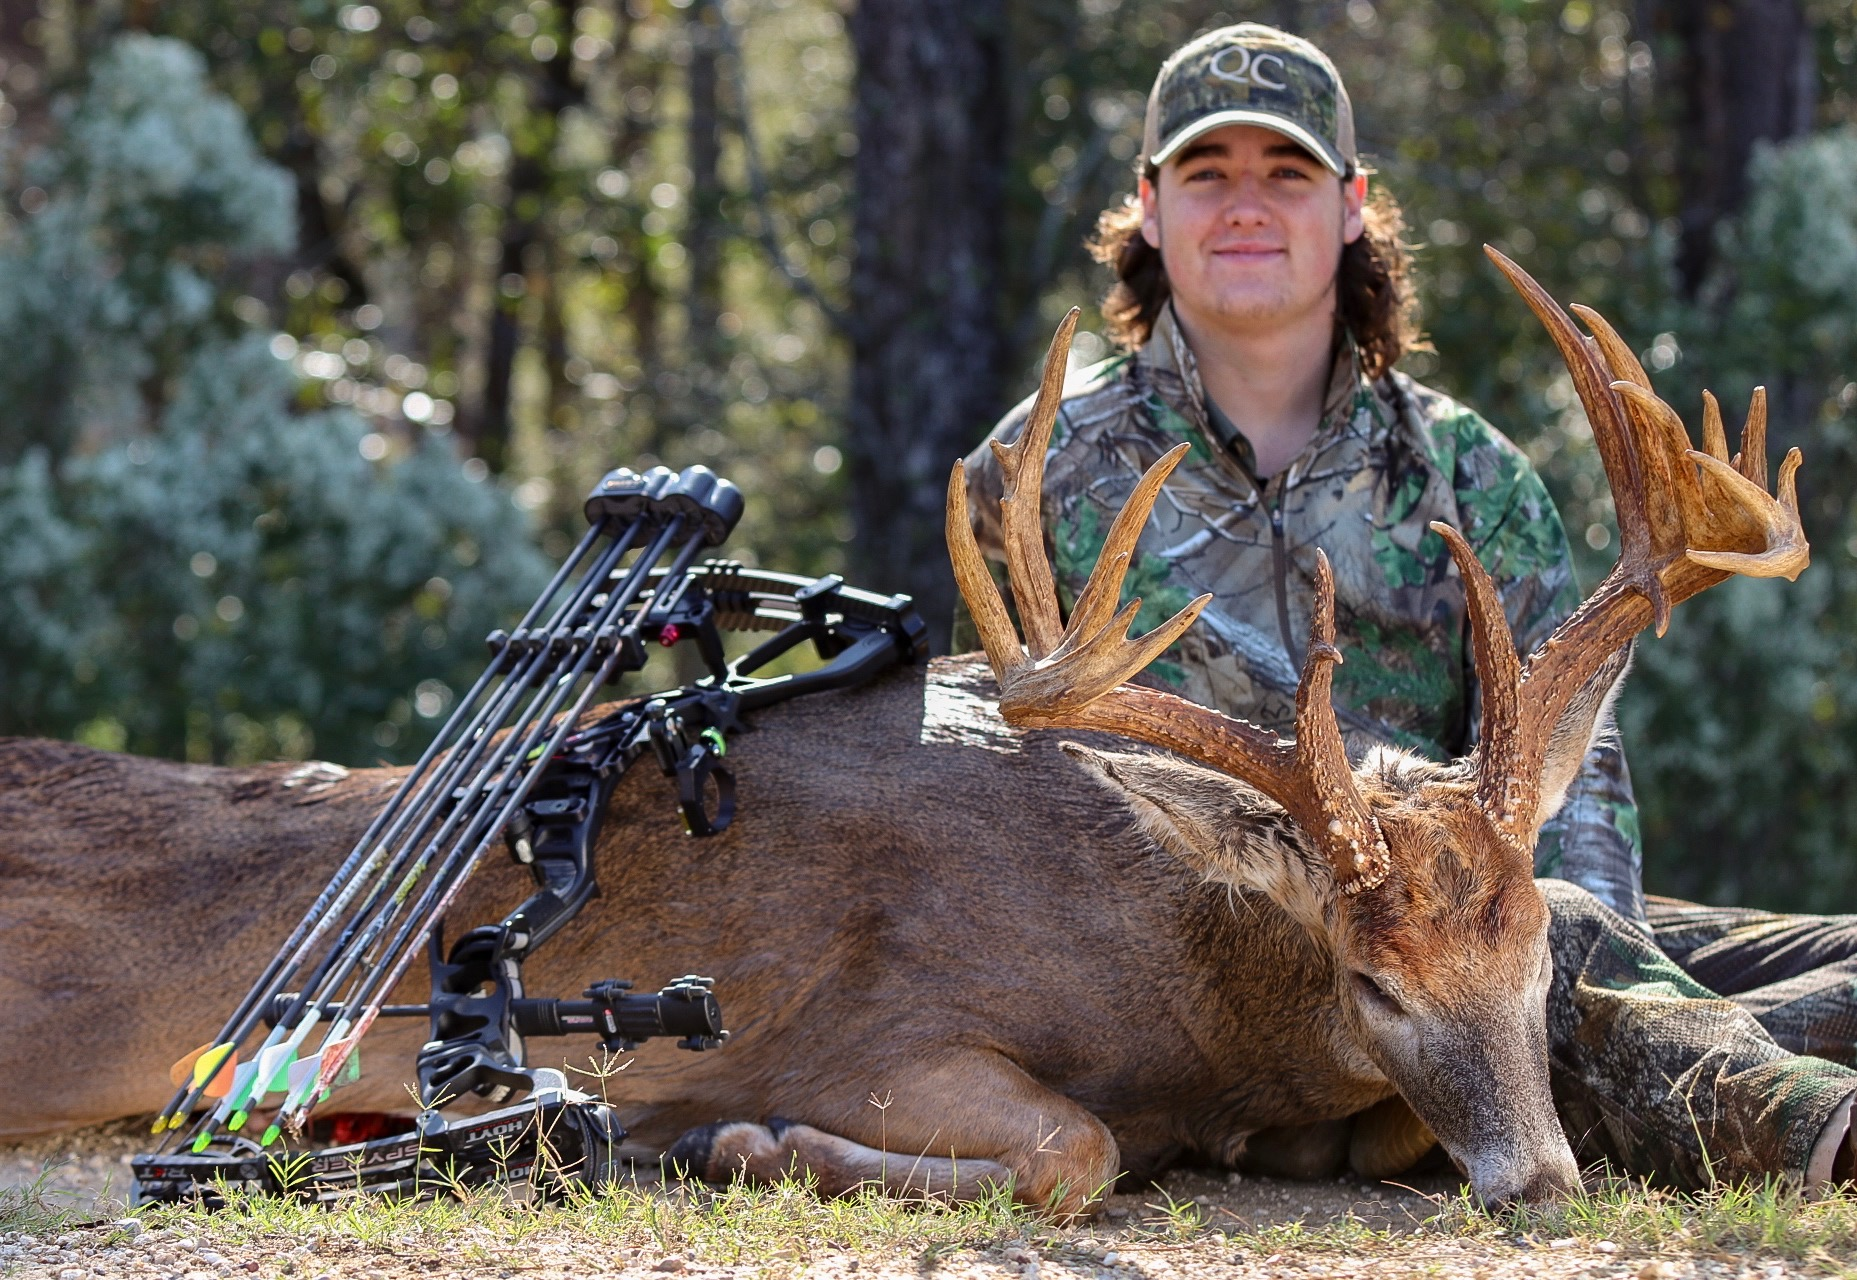 17-Year-Old Hunter's 204-Inch Buck Taken, Then Returned